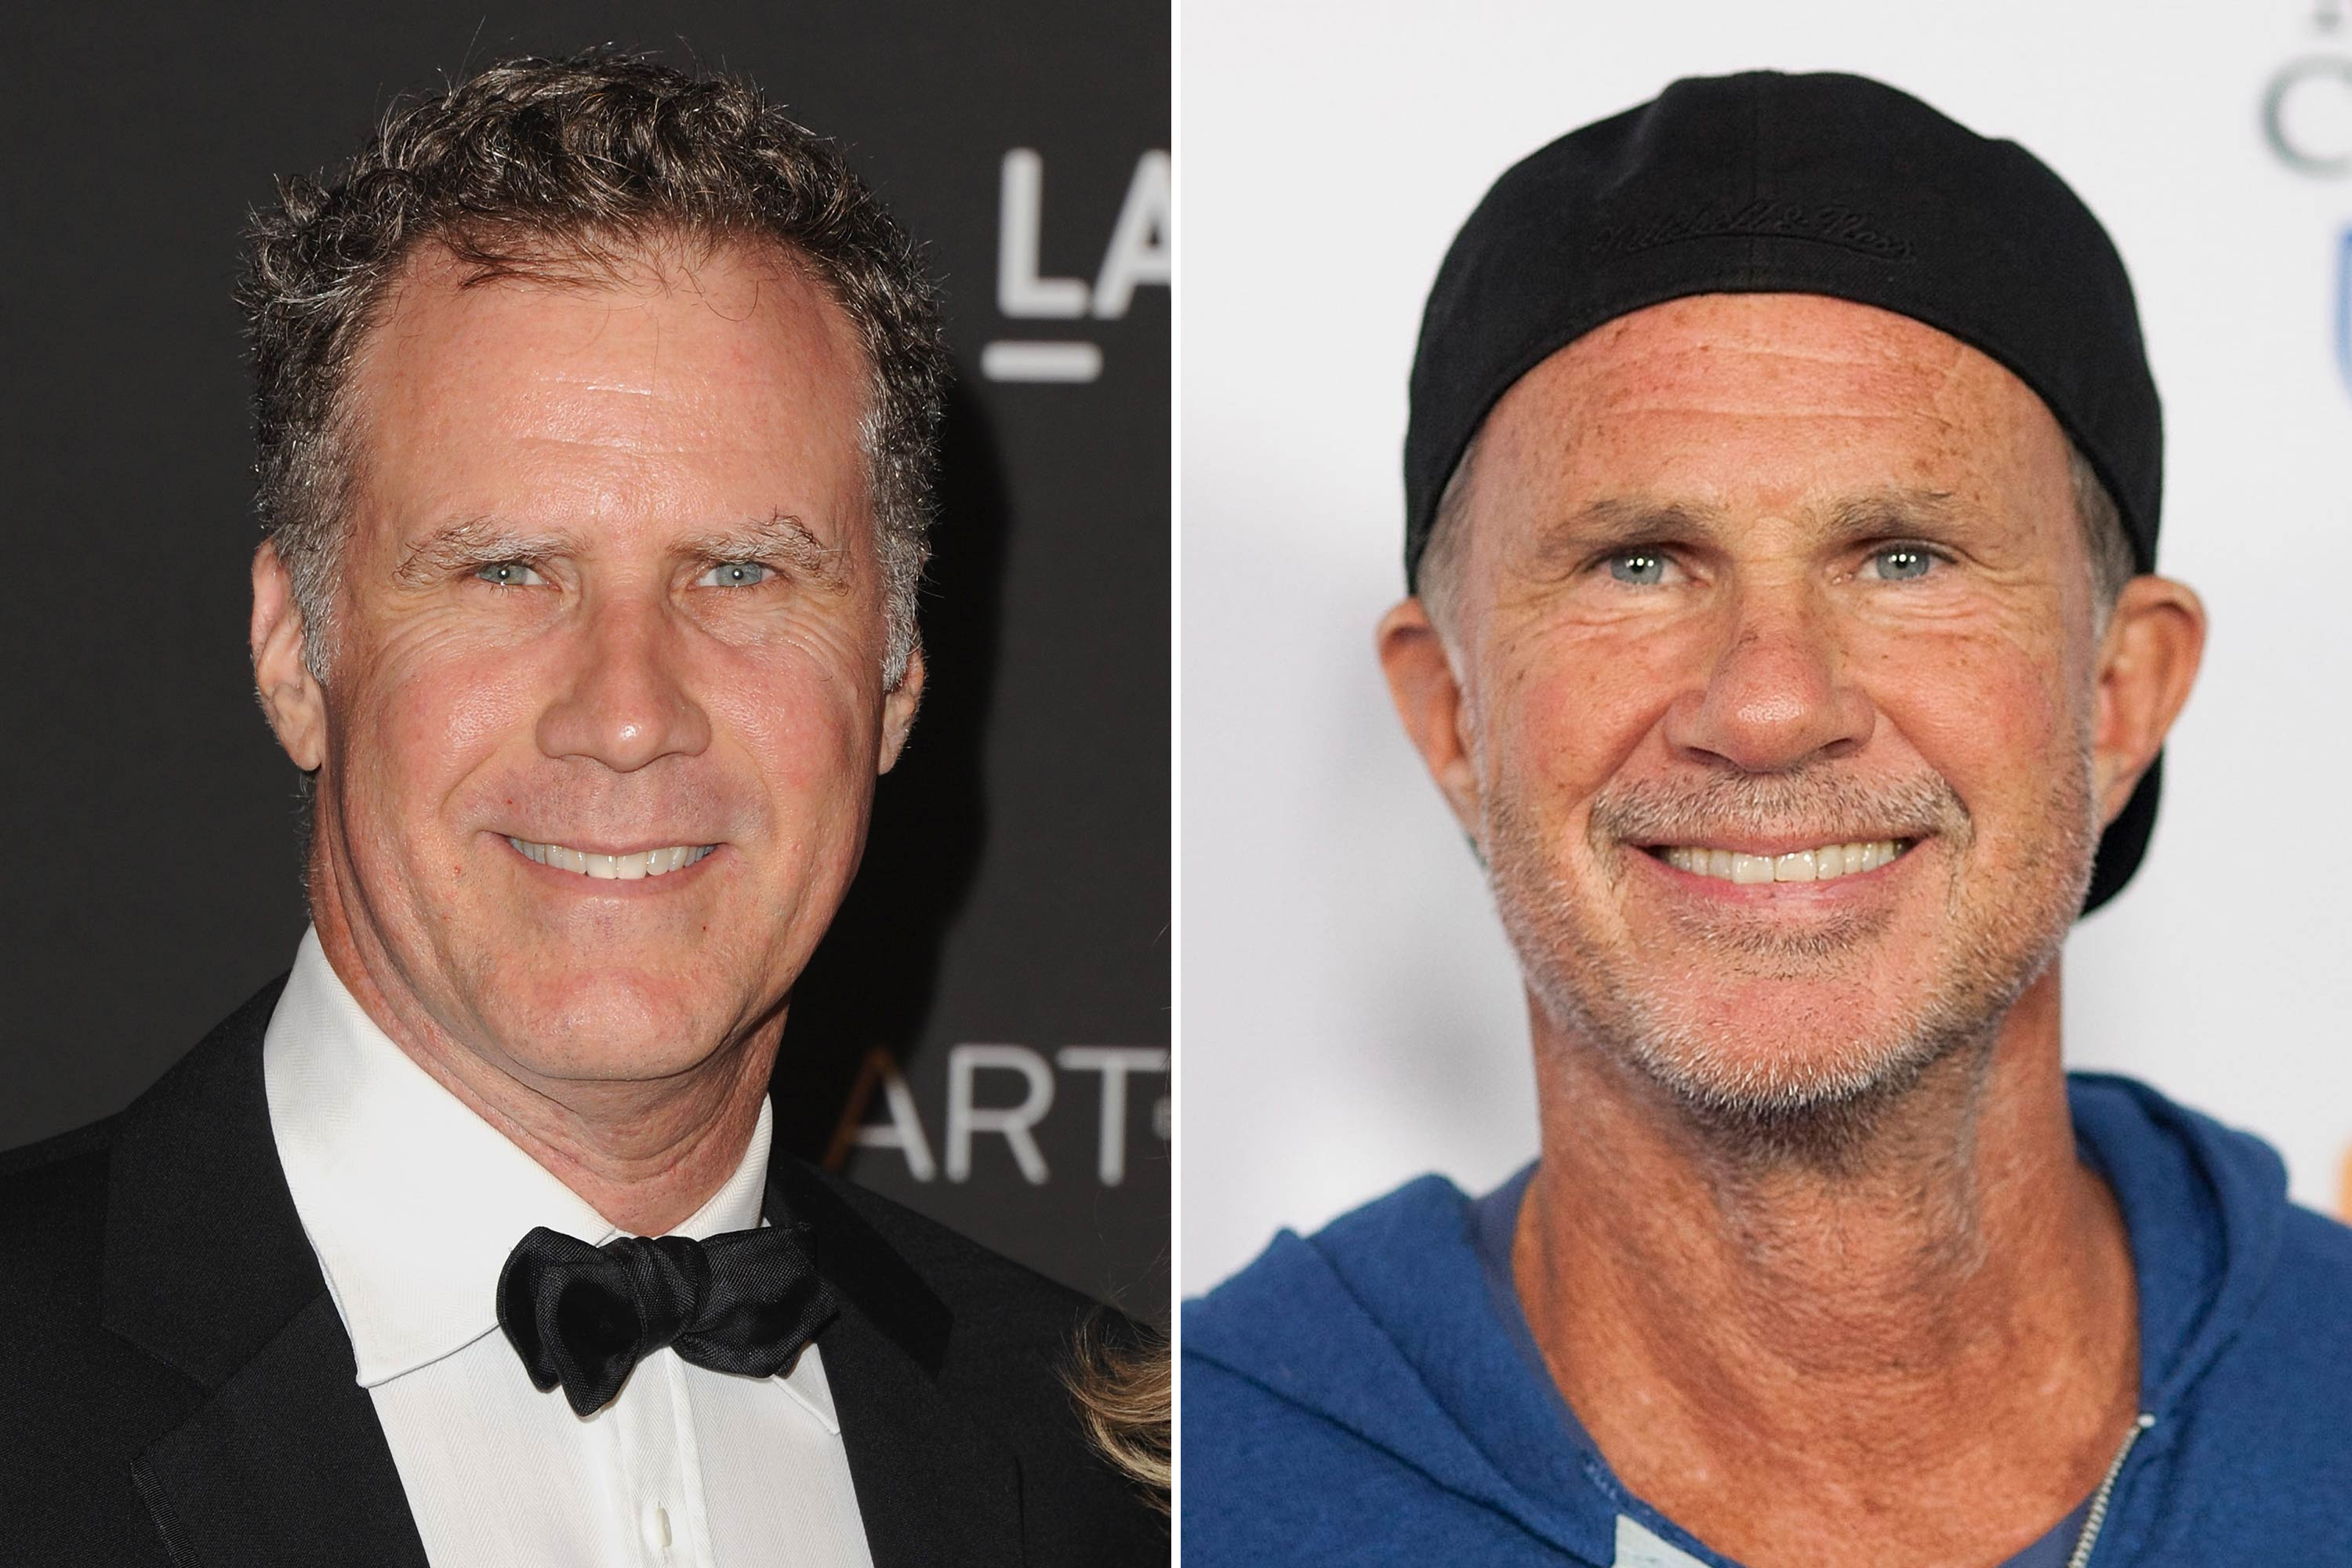 <strong>Will Ferrell &amp; Chad Smith</strong>